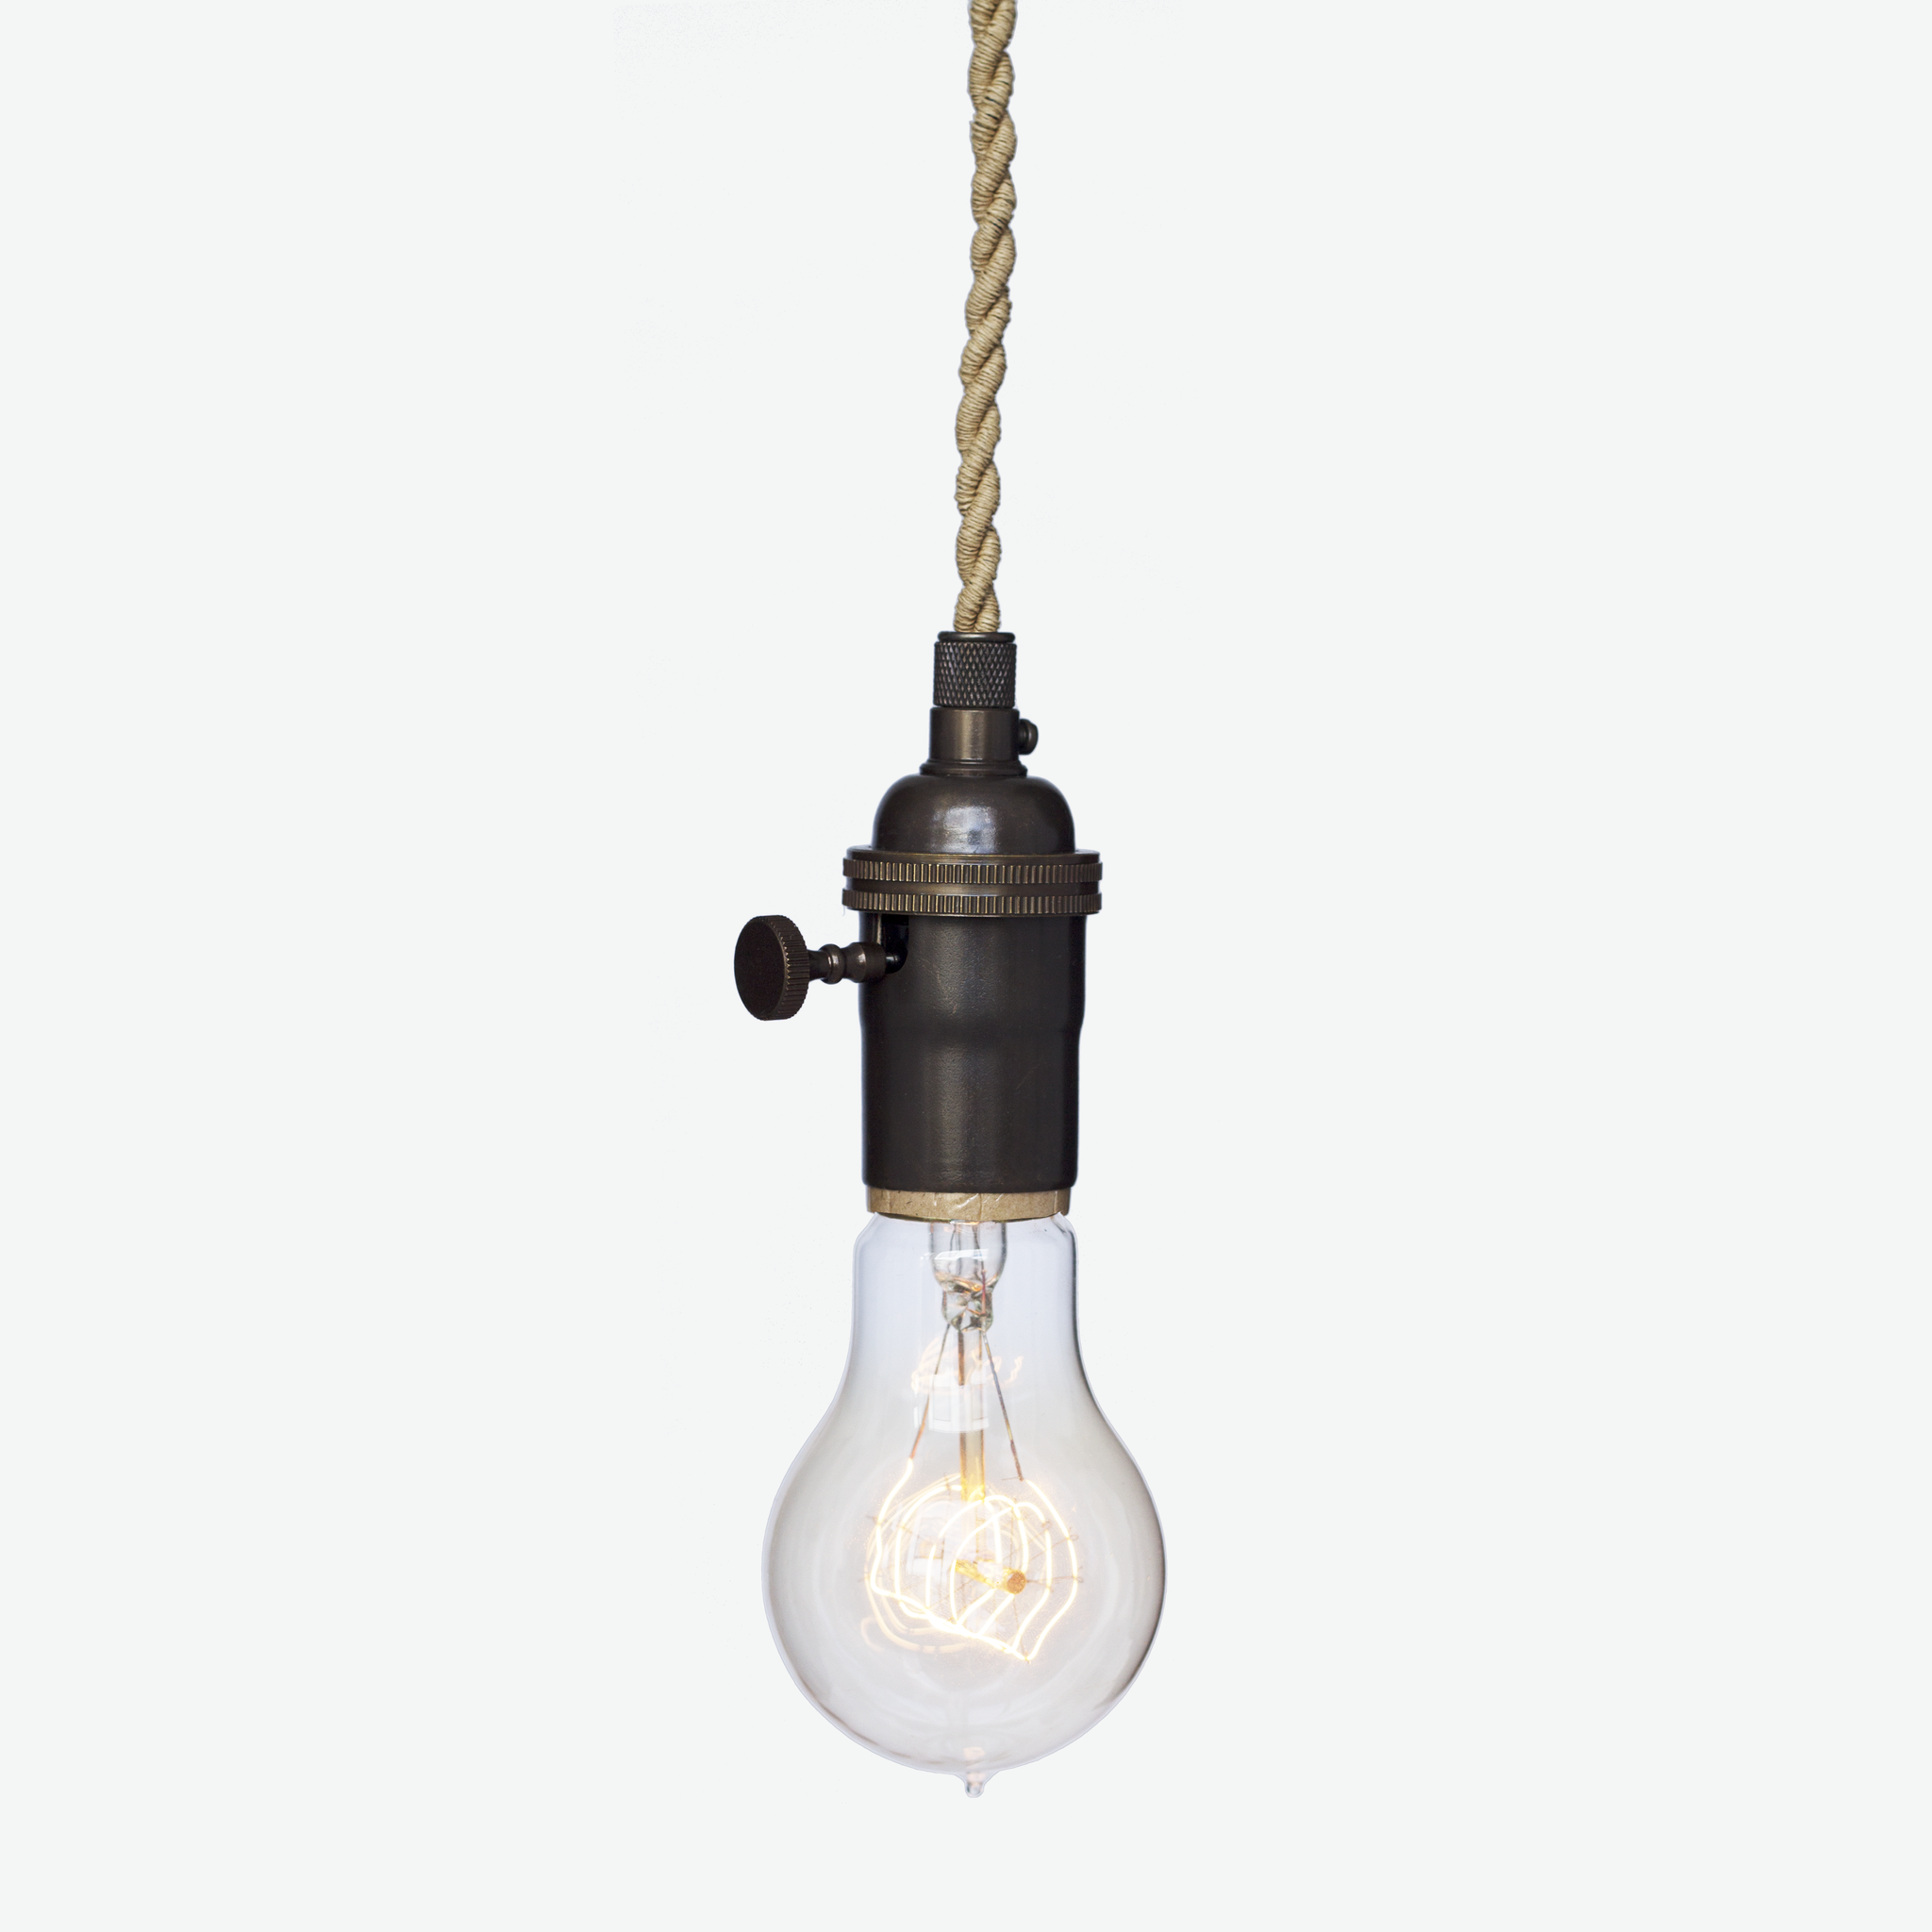 com misterfute pendant lighting ikea on amusing with light bulb